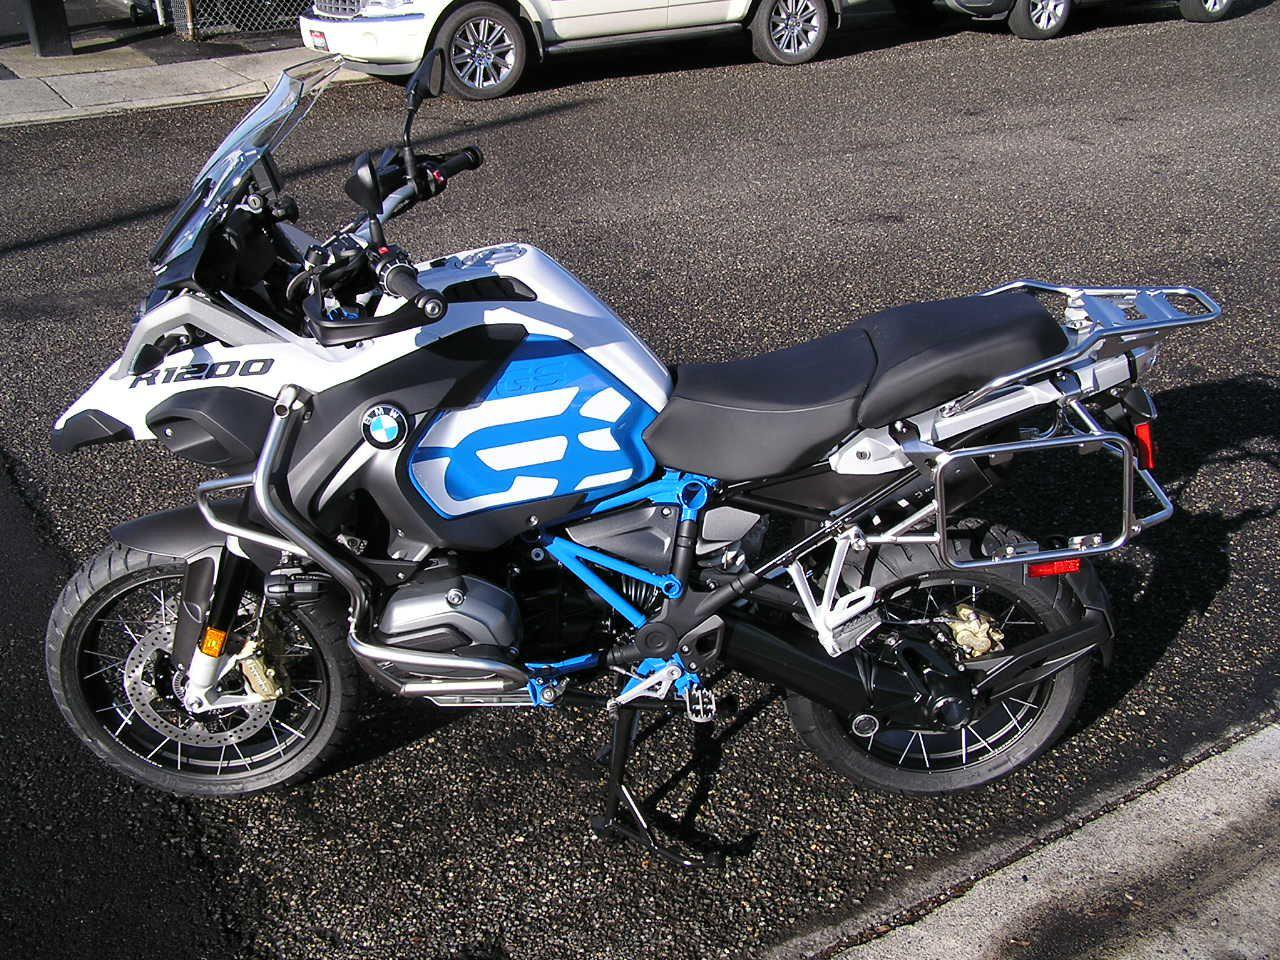 2018 Bmw R1200gs Adventure For Sale In Clarkston Wa Mac S Cycle